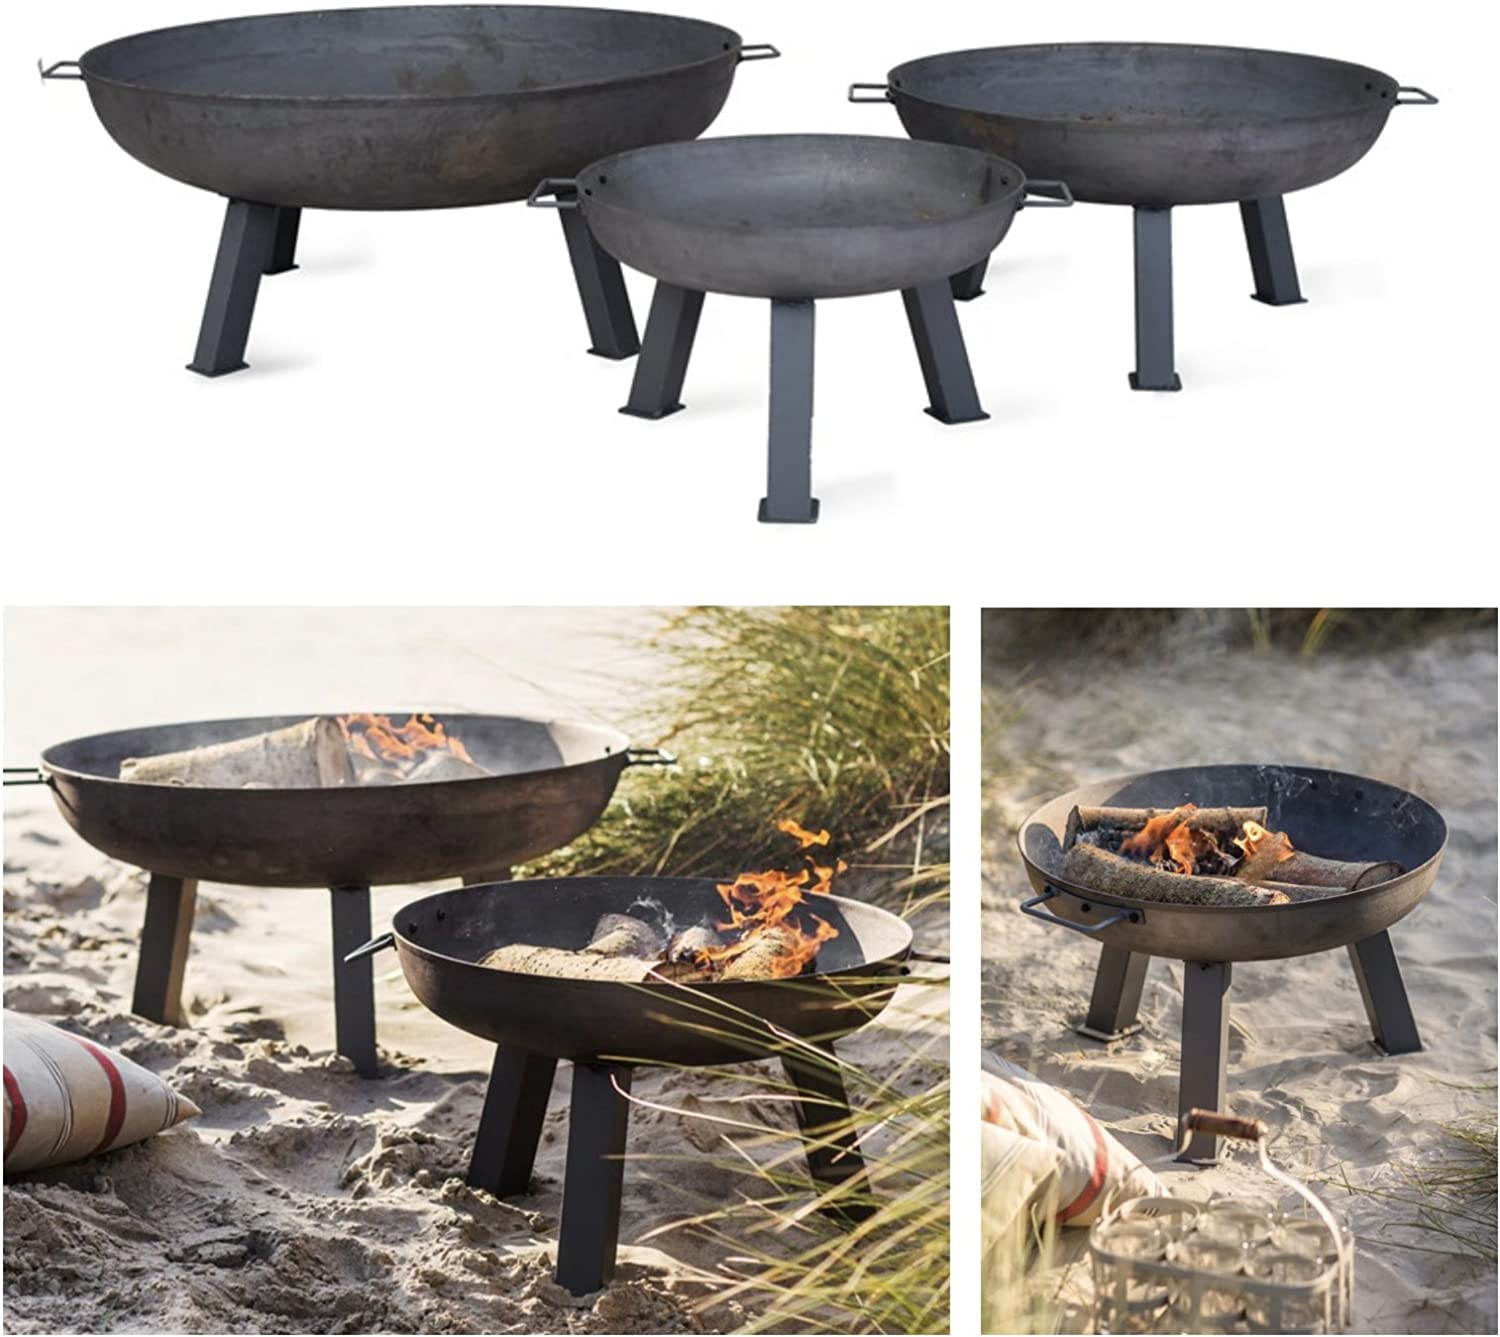 Ckb Ltd Fire Pit Garden Outdoor Patio ñ Large Burner With Handles Rustic Heavy Duty Free Standing Round Bowl Made From Raw Steel Brazier Available In 3 Sizes Large H41 5